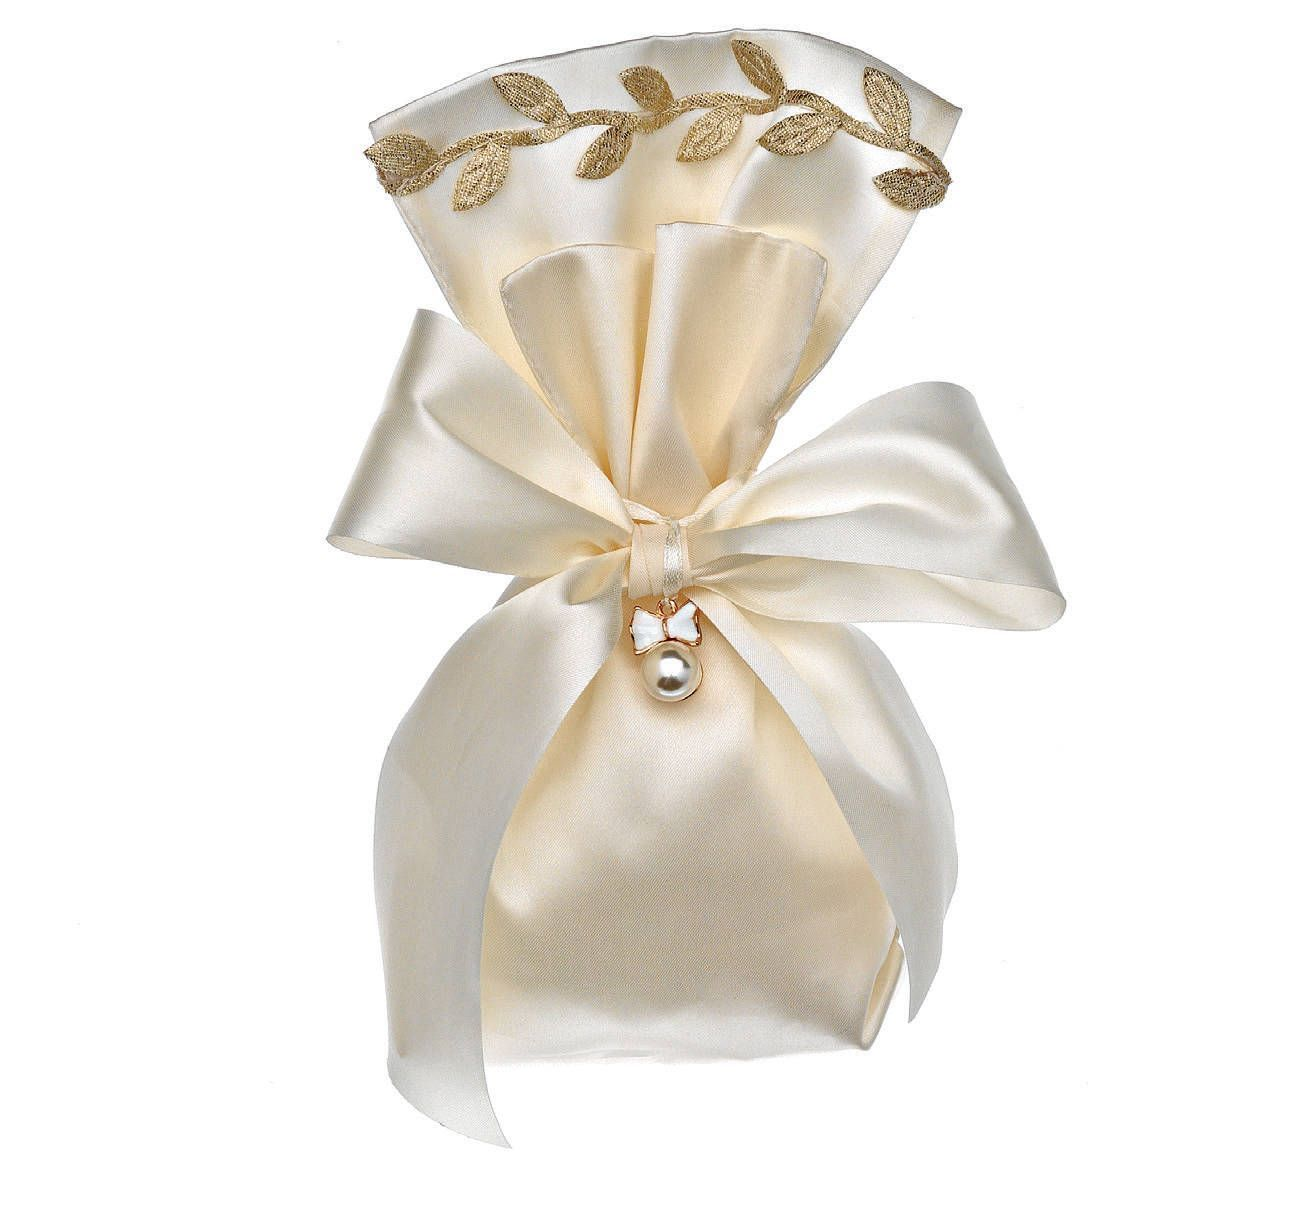 Olive pearl favors unique favors wedding favors Baptism favors Greek ...